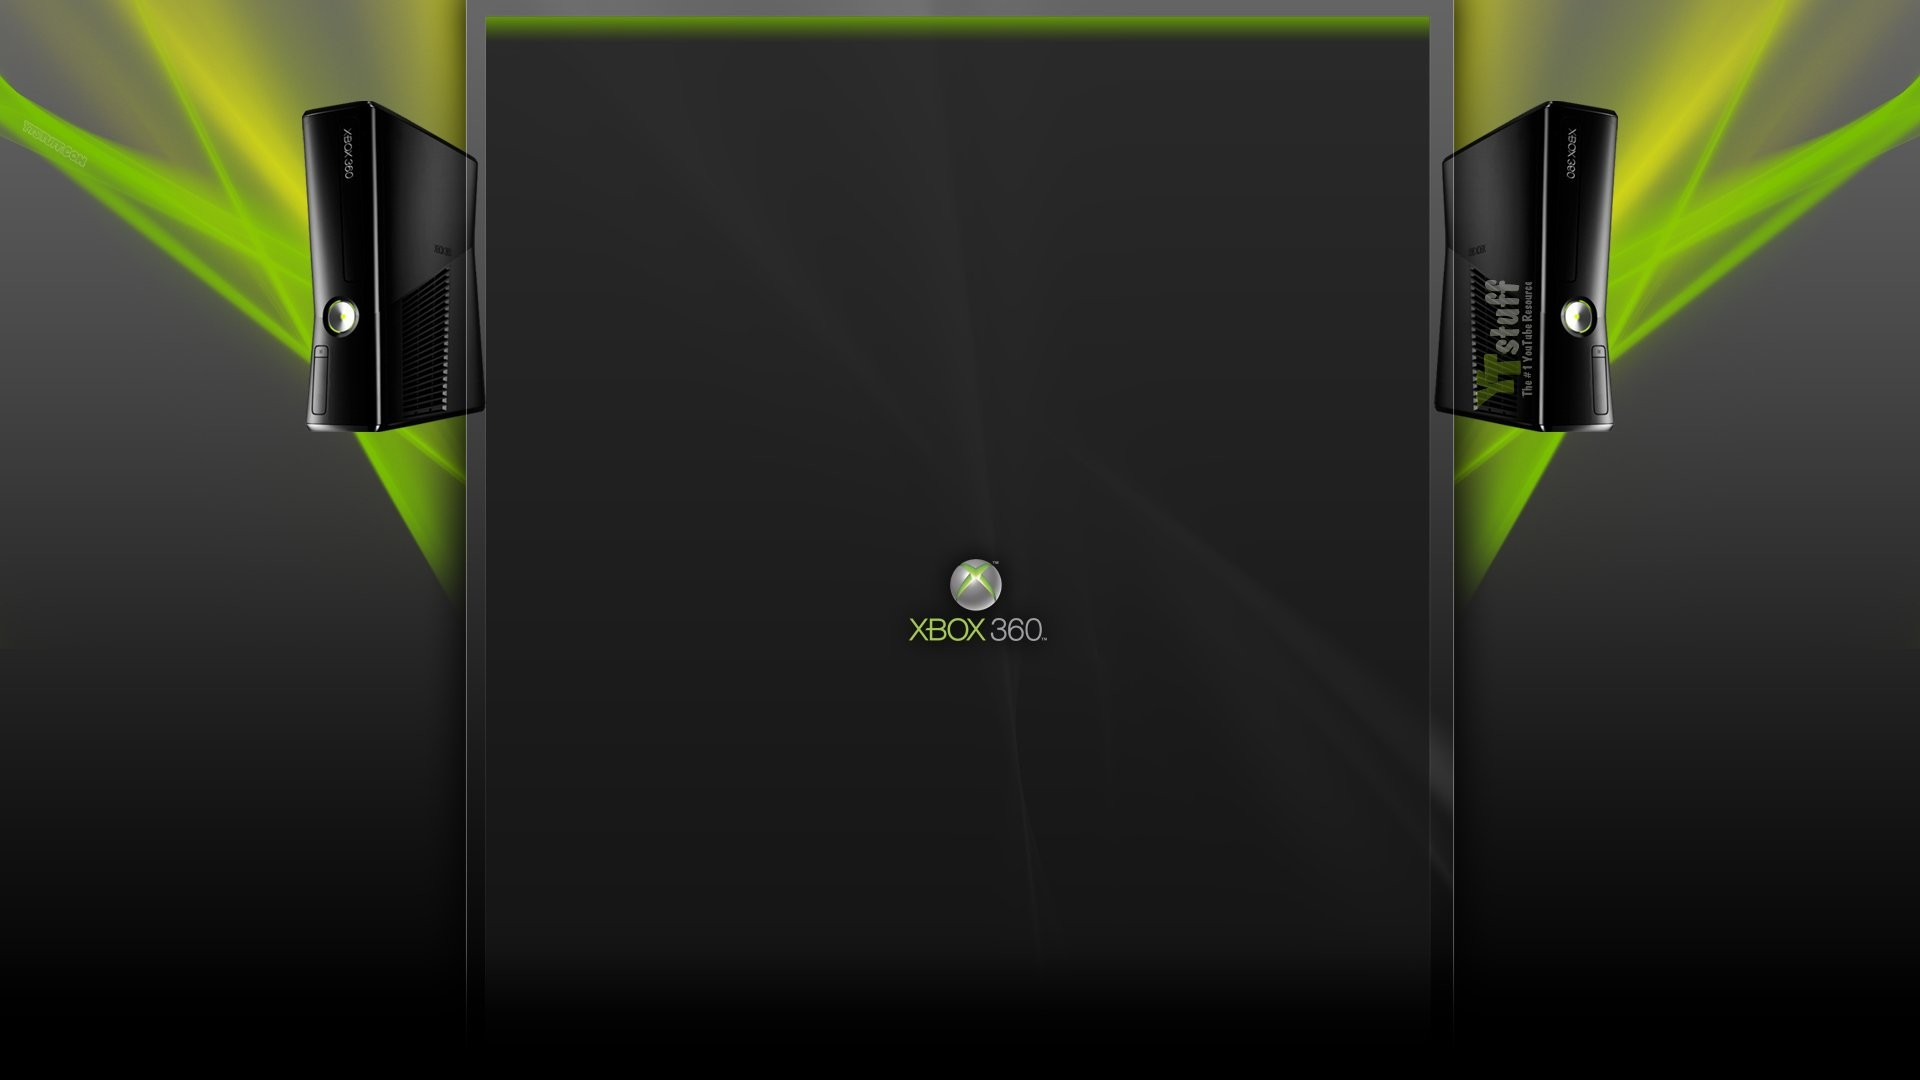 Cool Xbox Backgrounds (69+ images)